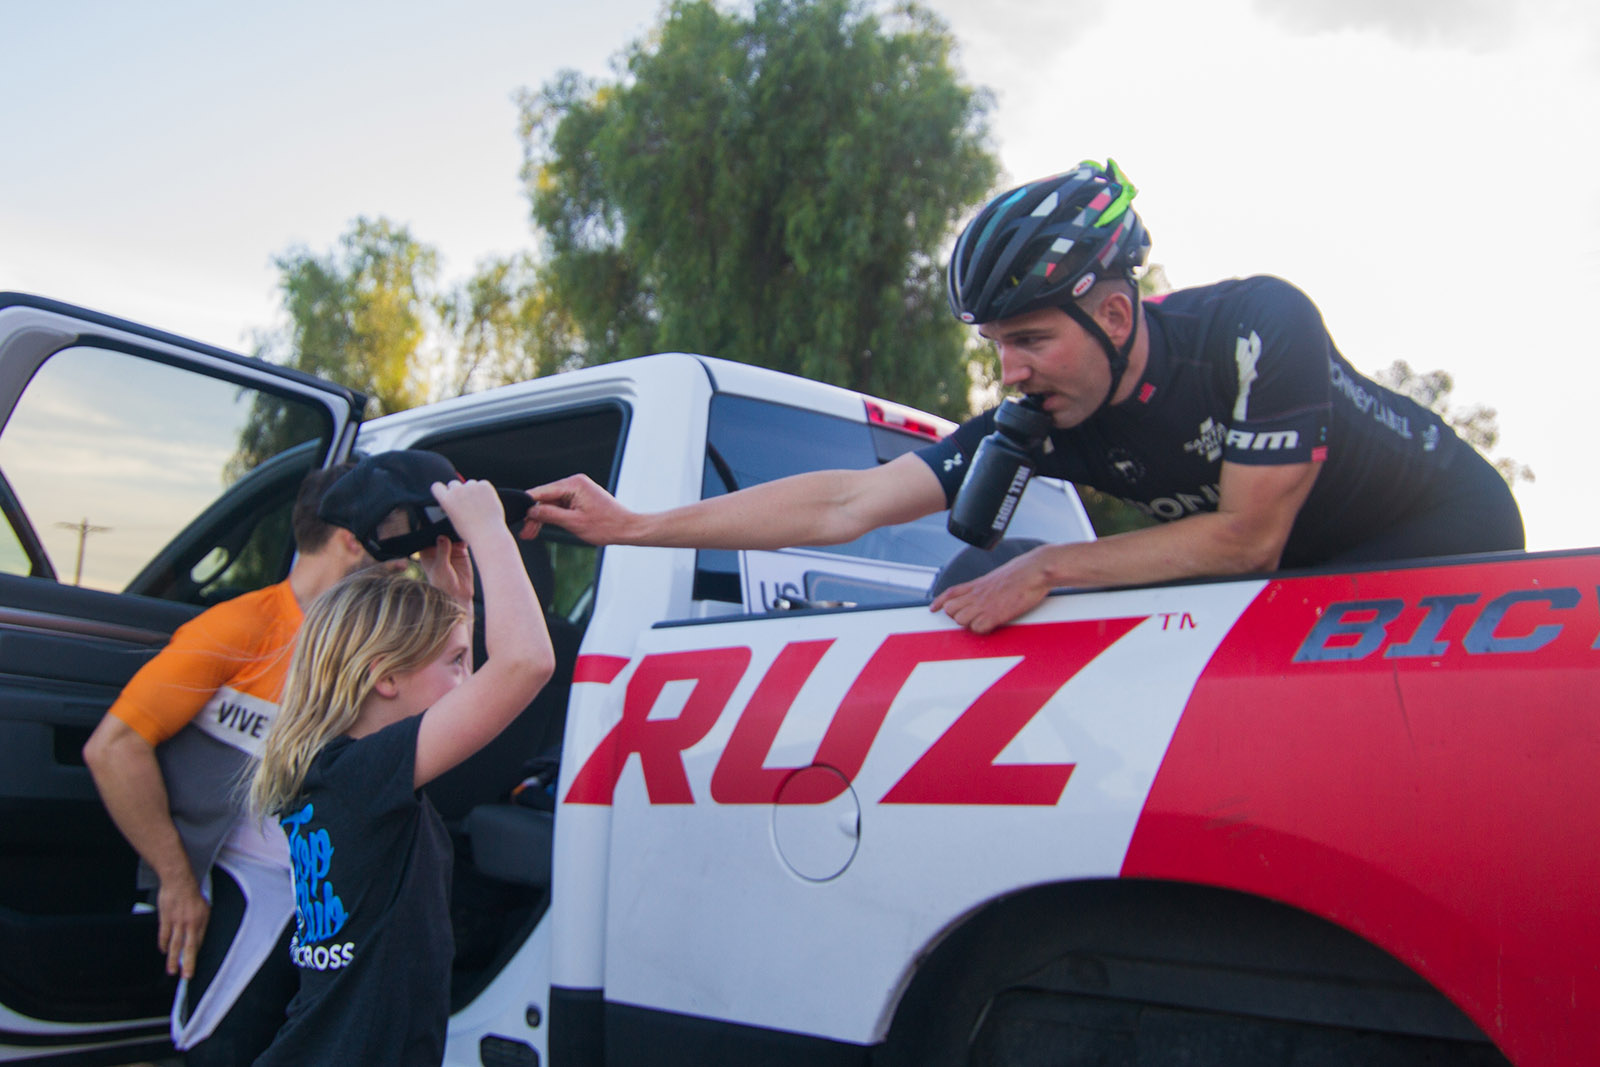 Santa Cruz Free Agent Tobin Ortenblad Stoking Out Fans at CXLA Cyclocross Race